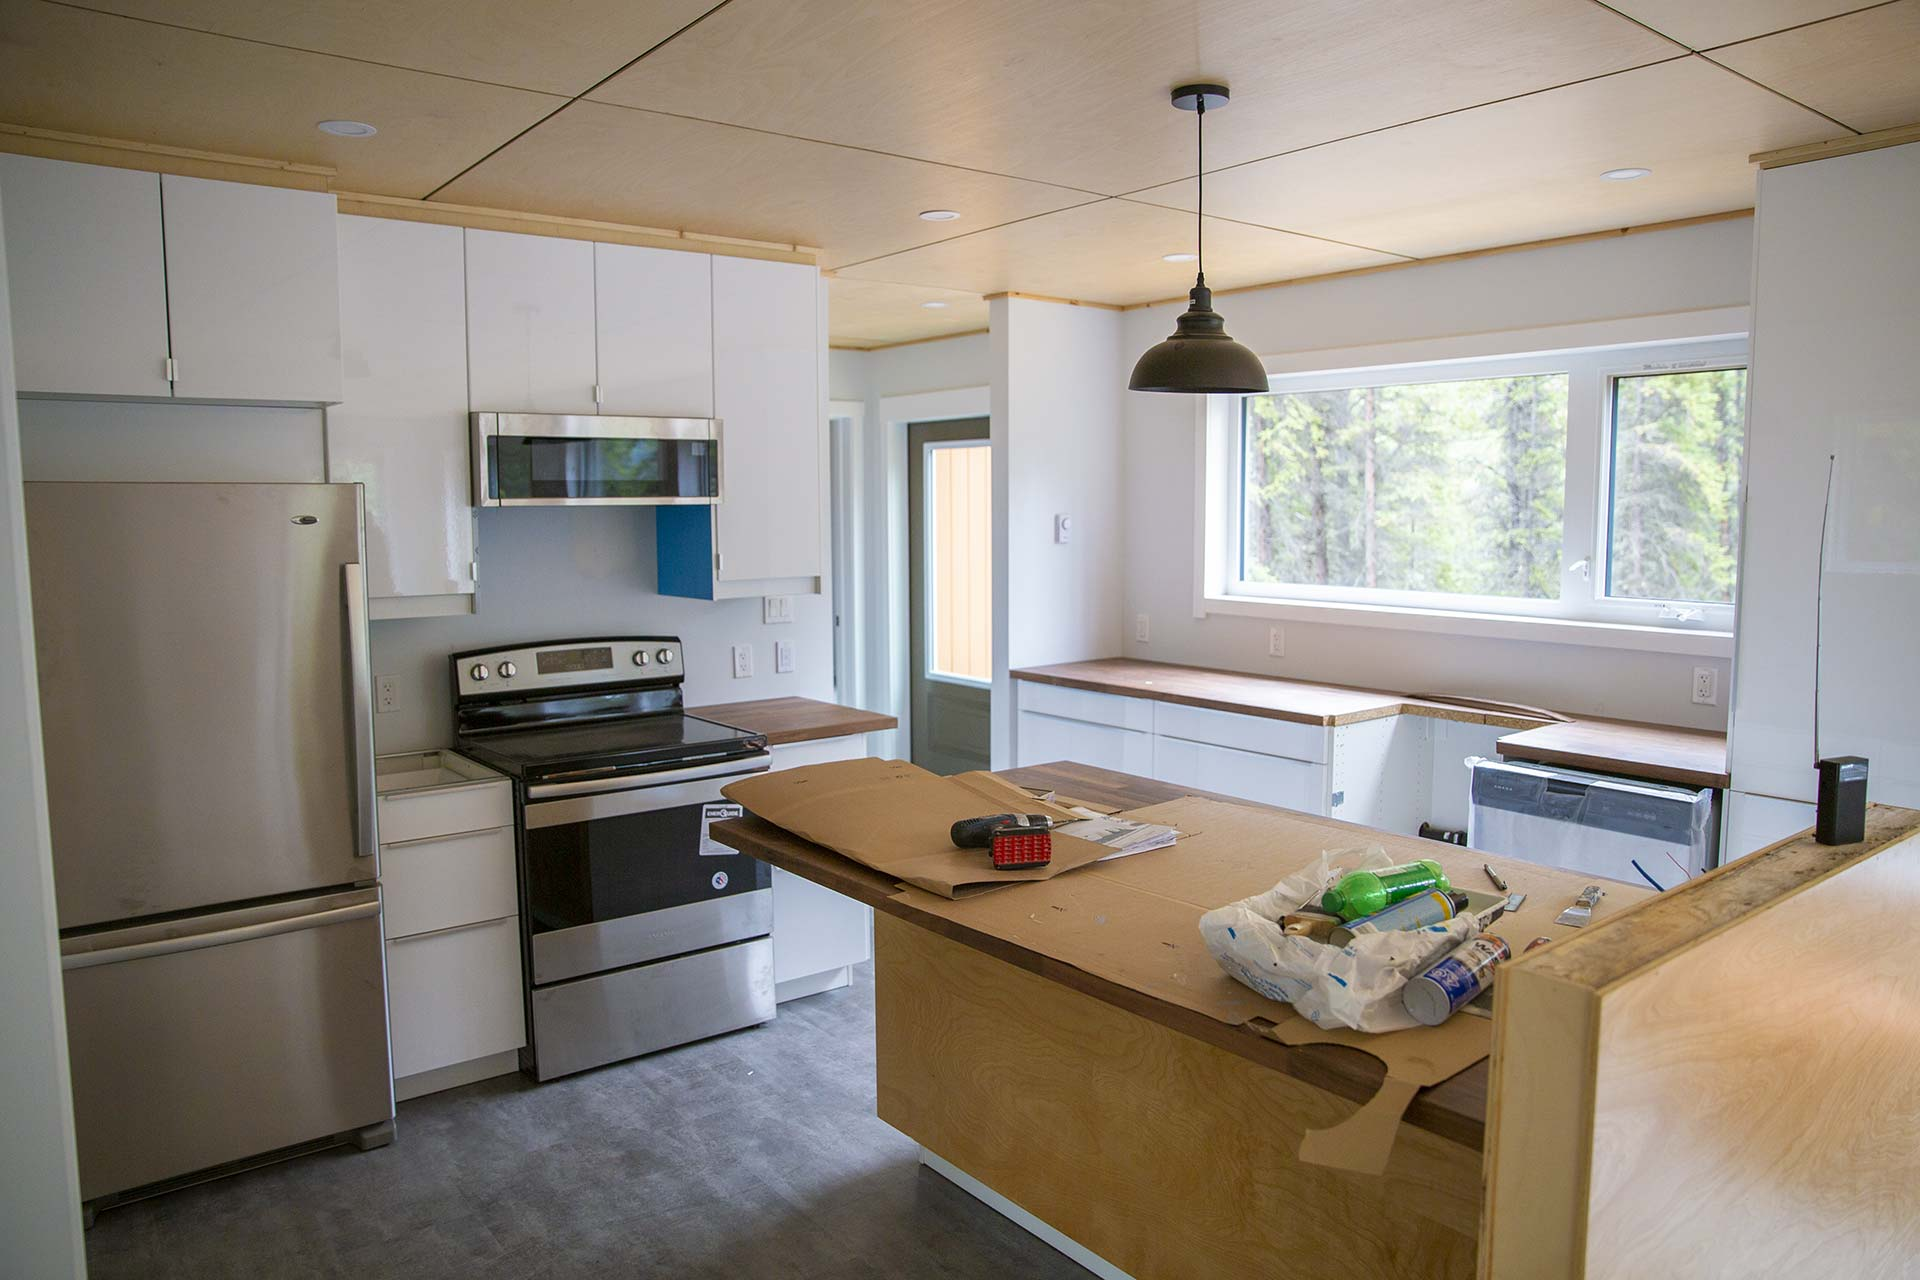 Yukon Real Estate For Sale: Kitchen with a lakeside view